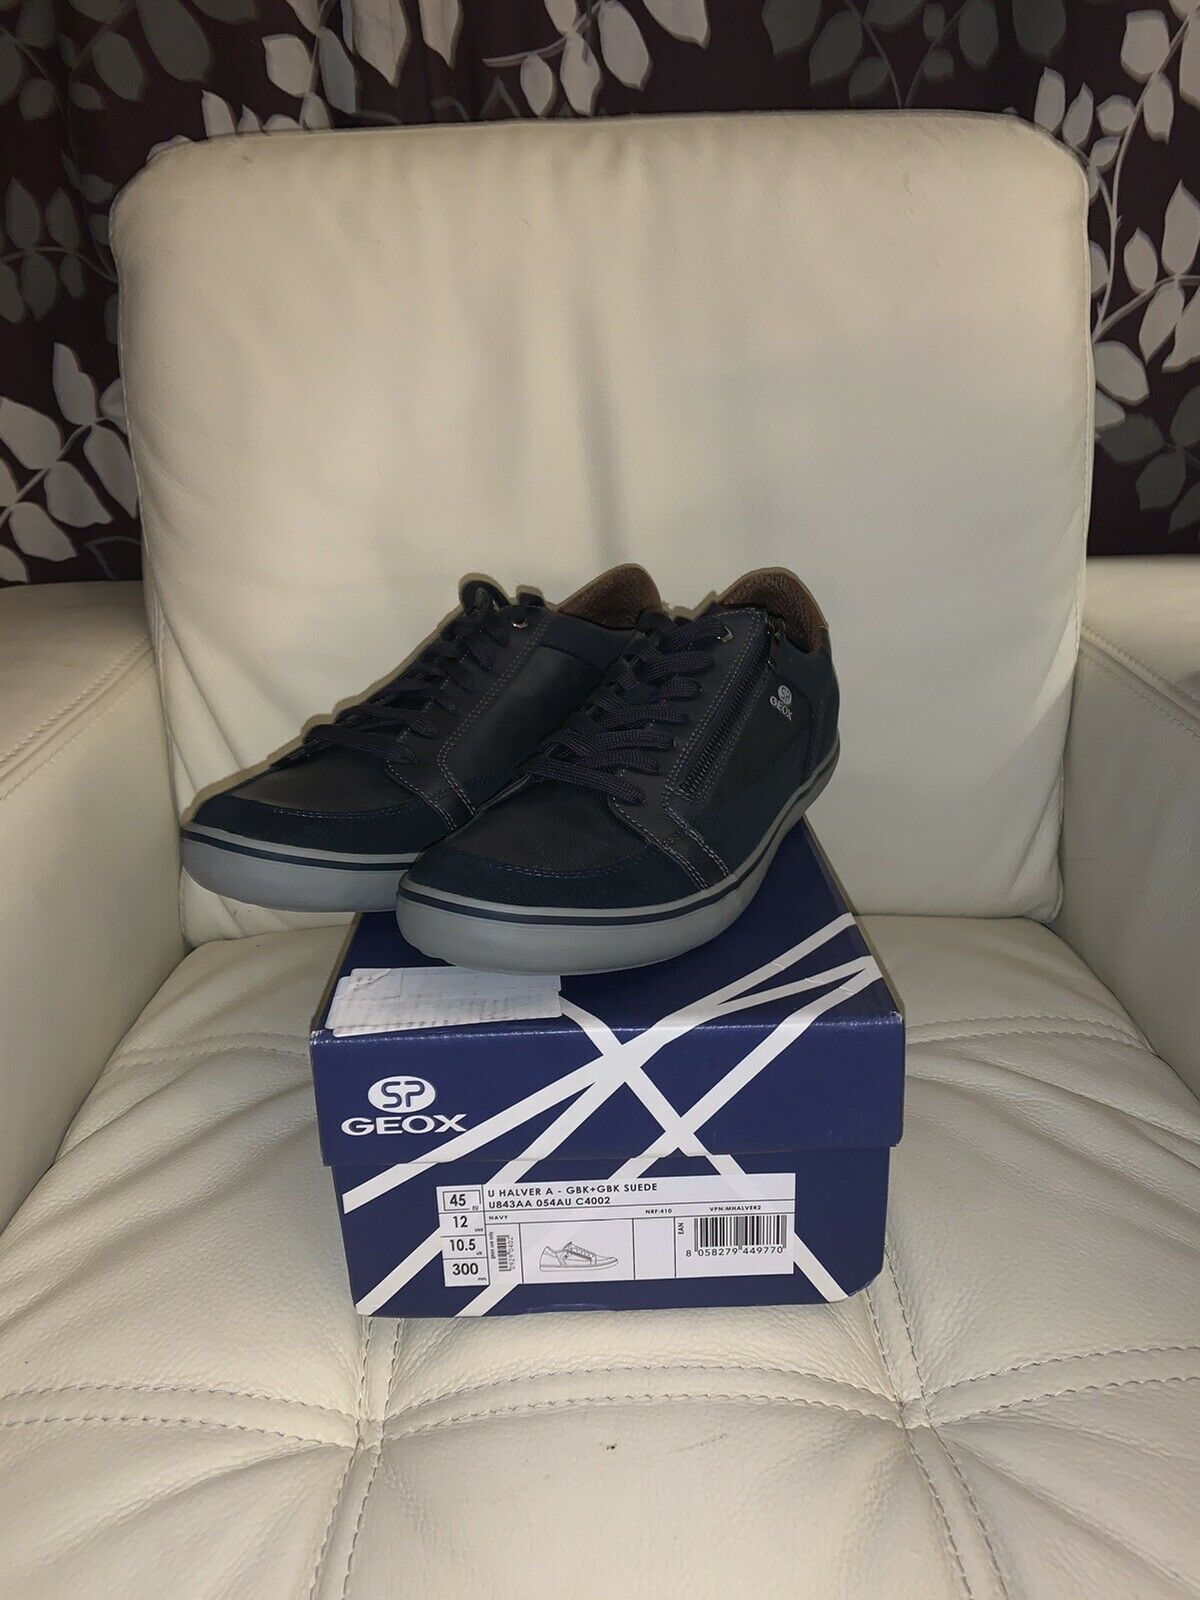 SP Geox - Navy - Size 10.5 UK (NEW WITH BOX)